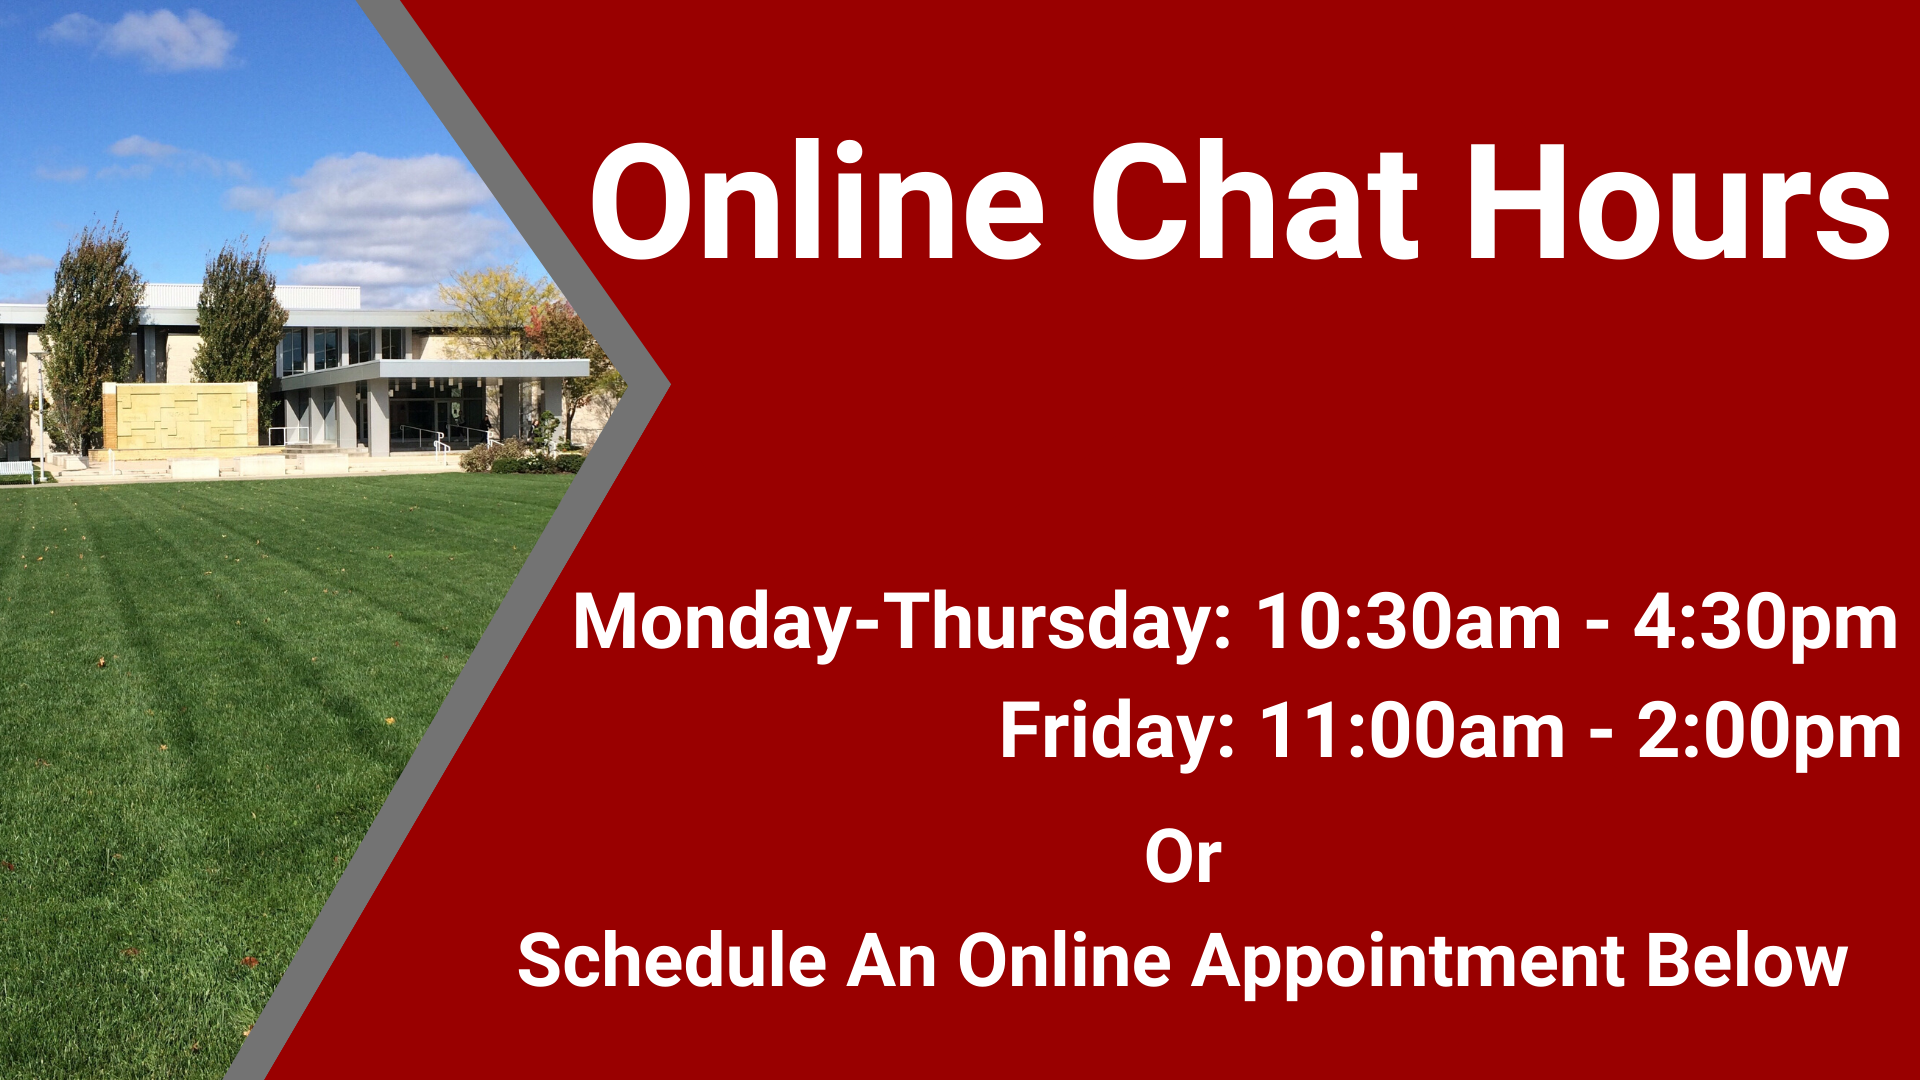 online chat hours Monday - Thursday 10:30am - 4:30pm,Friday 11am - 2pm